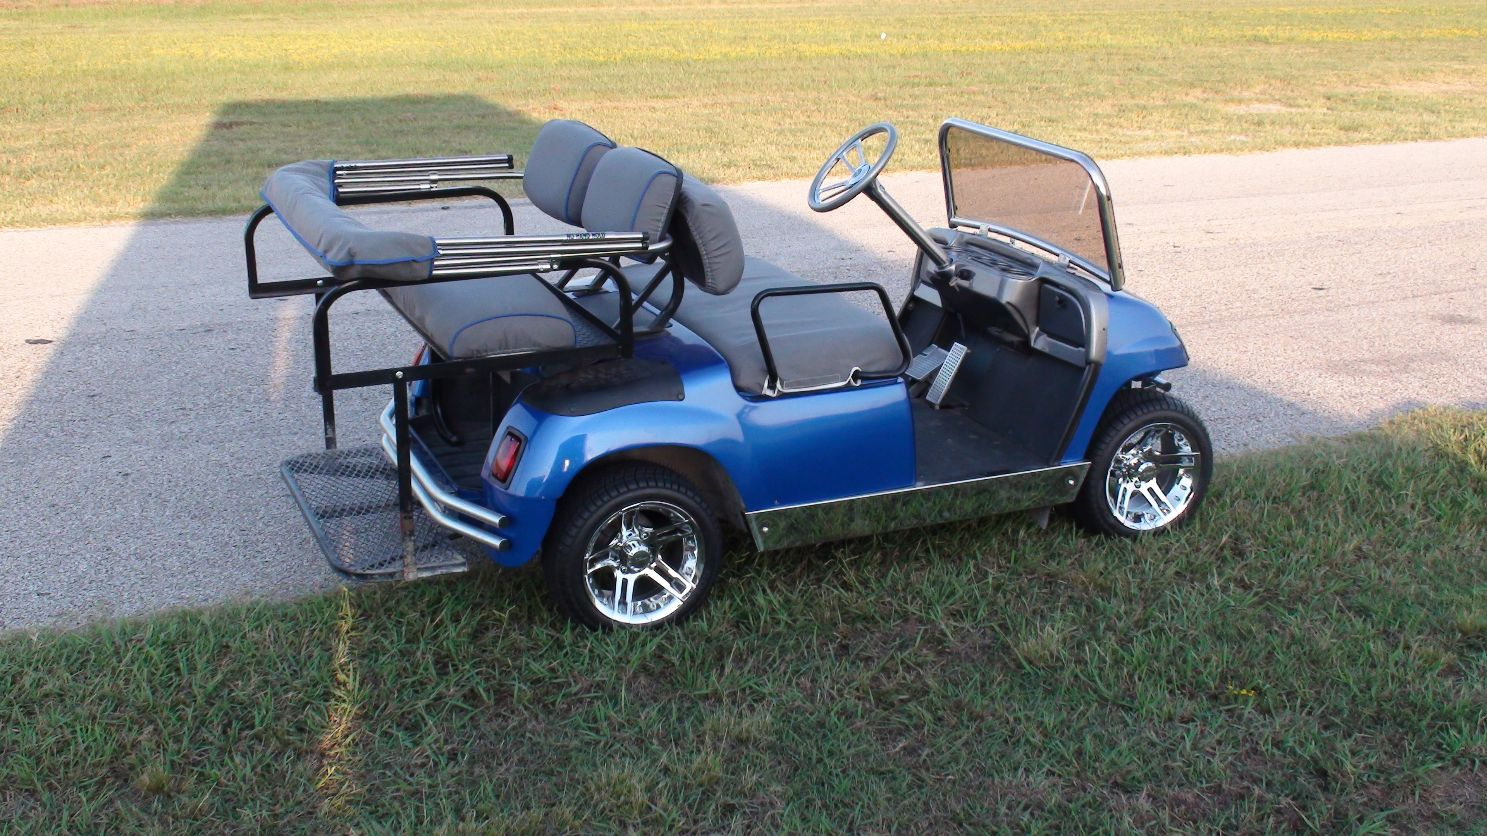 Golf Cart tops roofs canopies|soft convertible|solar  Yamaha Golf Car Wiring Diagram on yamaha golf car repair, yamaha golf car carburetor, yamaha motorcycle wiring diagrams, yamaha golf car tires, yamaha golf car headlights, ez golf cart wiring diagram, yamaha golf car clutch, yamaha golf car accessories, yamaha golf car parts,